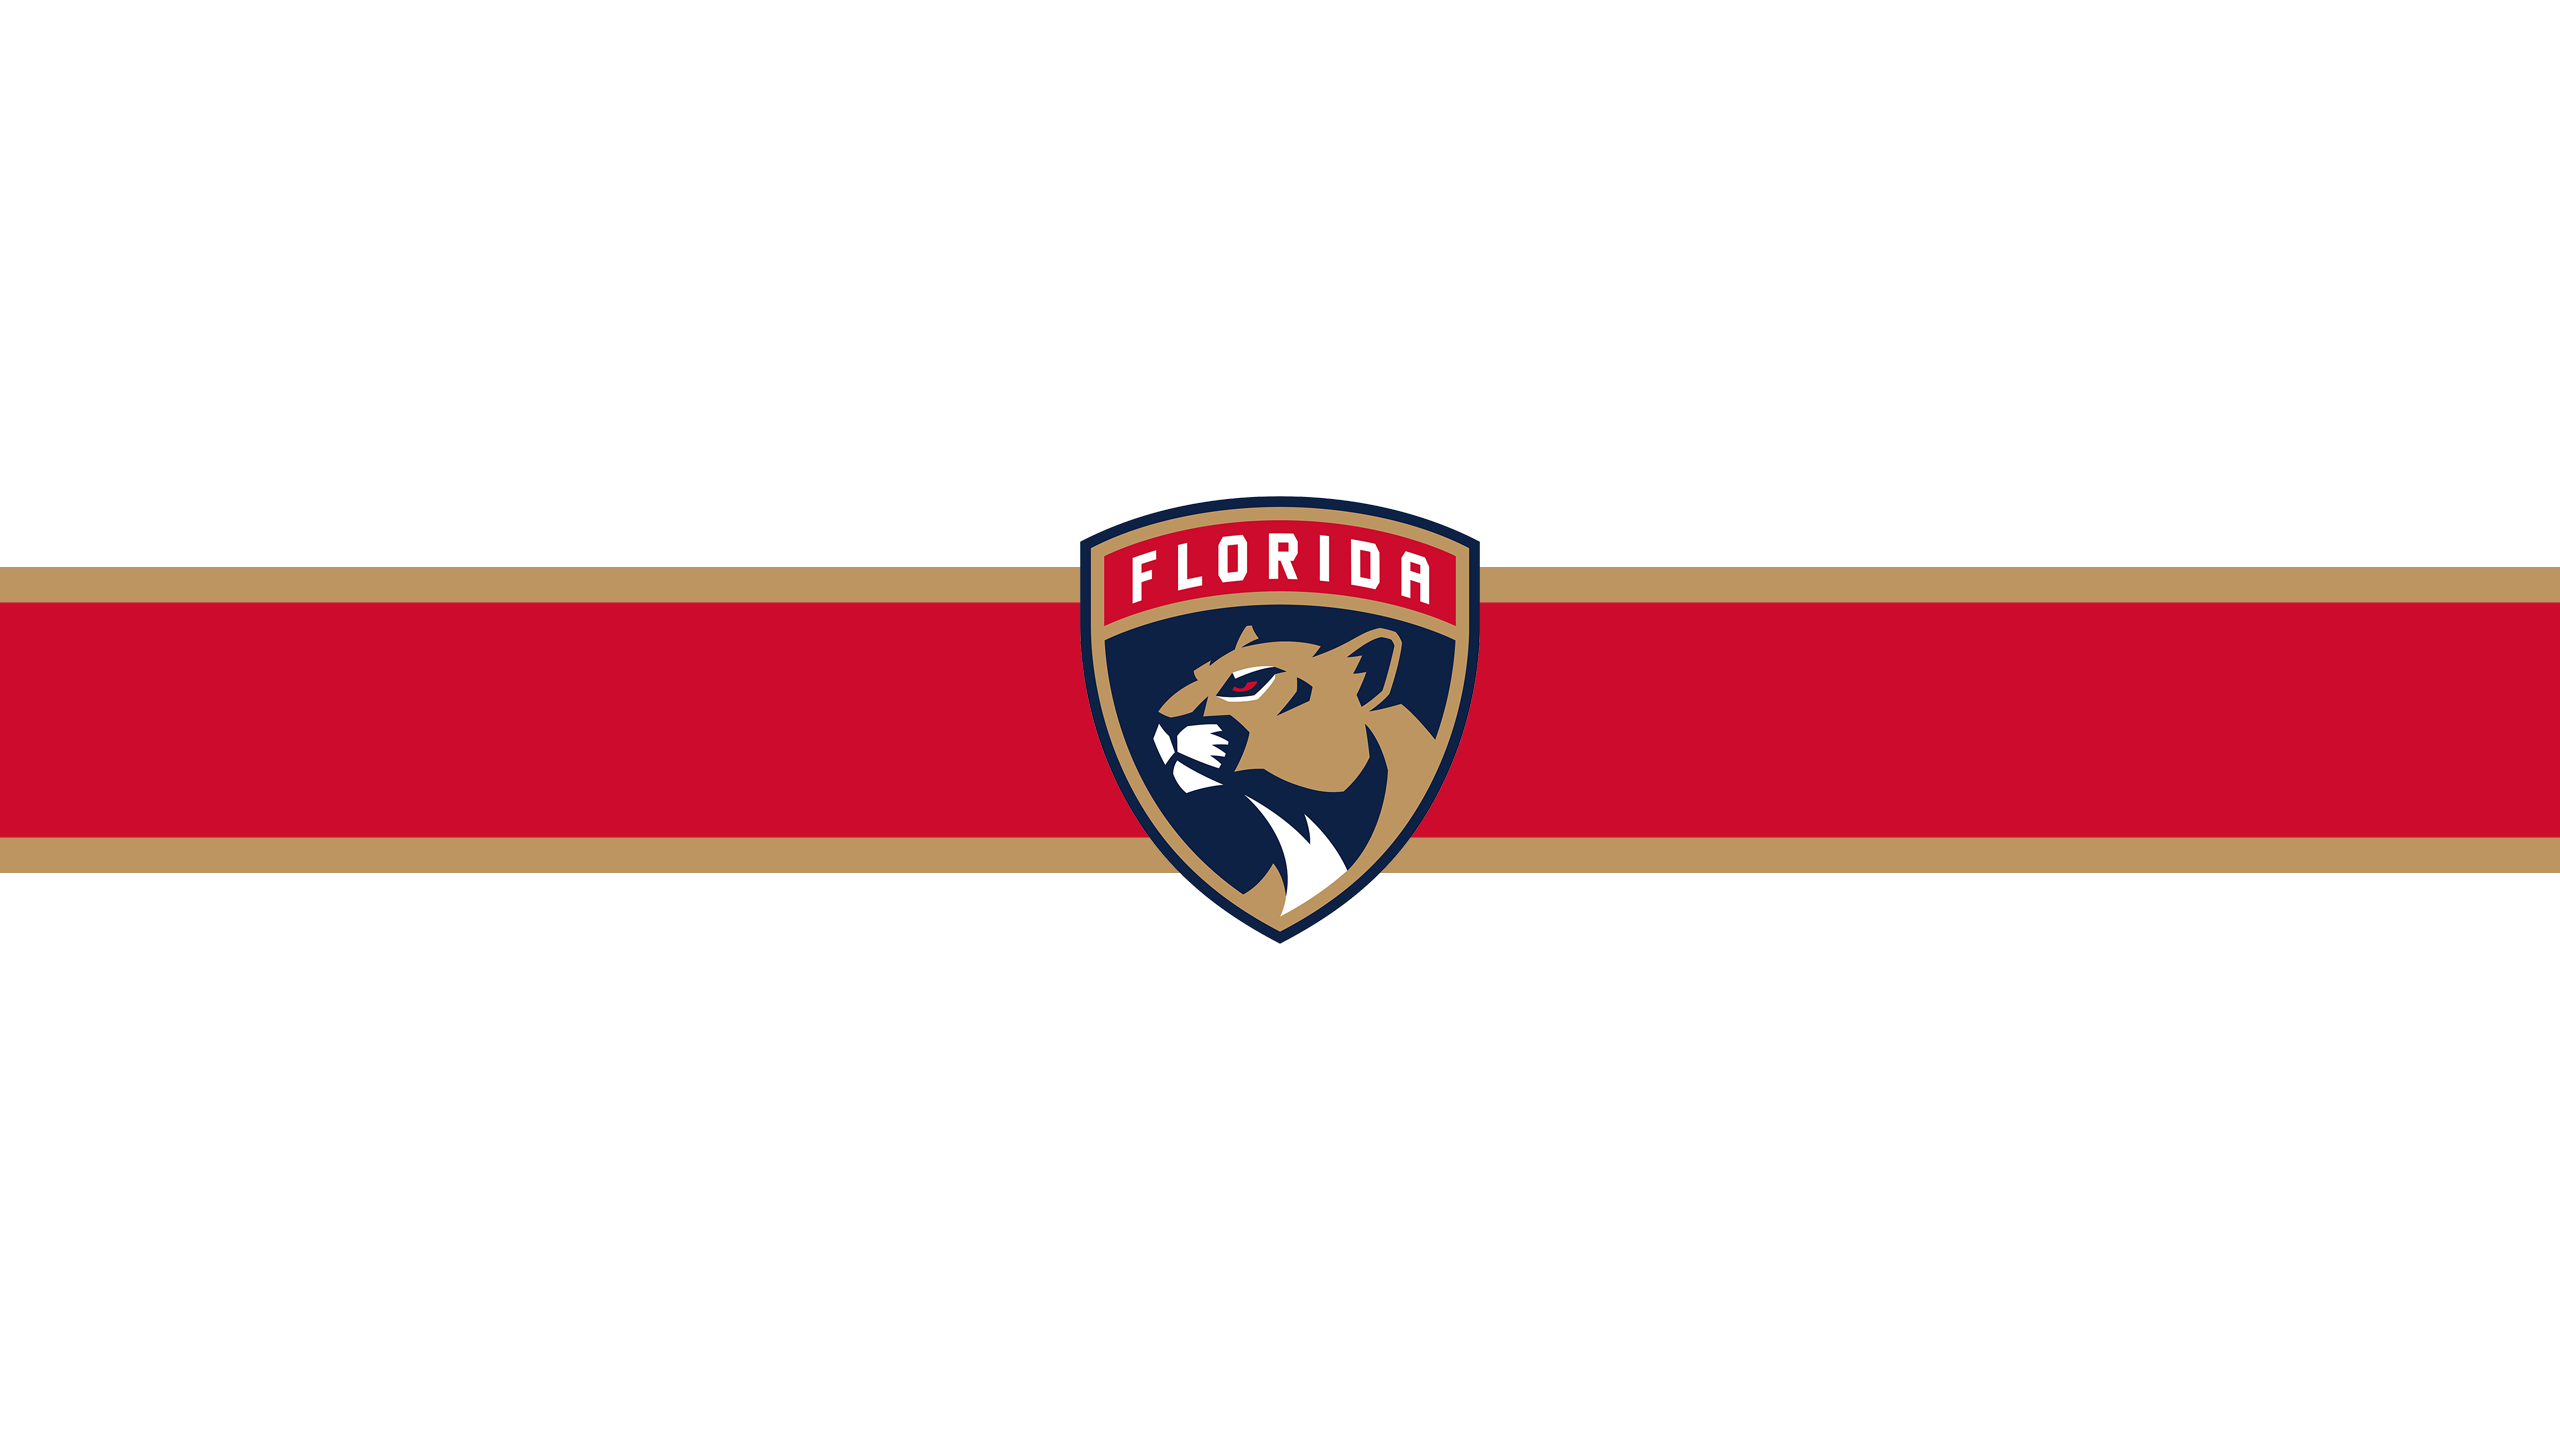 2560x1440 Florida Panthers Wallpaper 23 - 2560 X 1440 | stmed.net